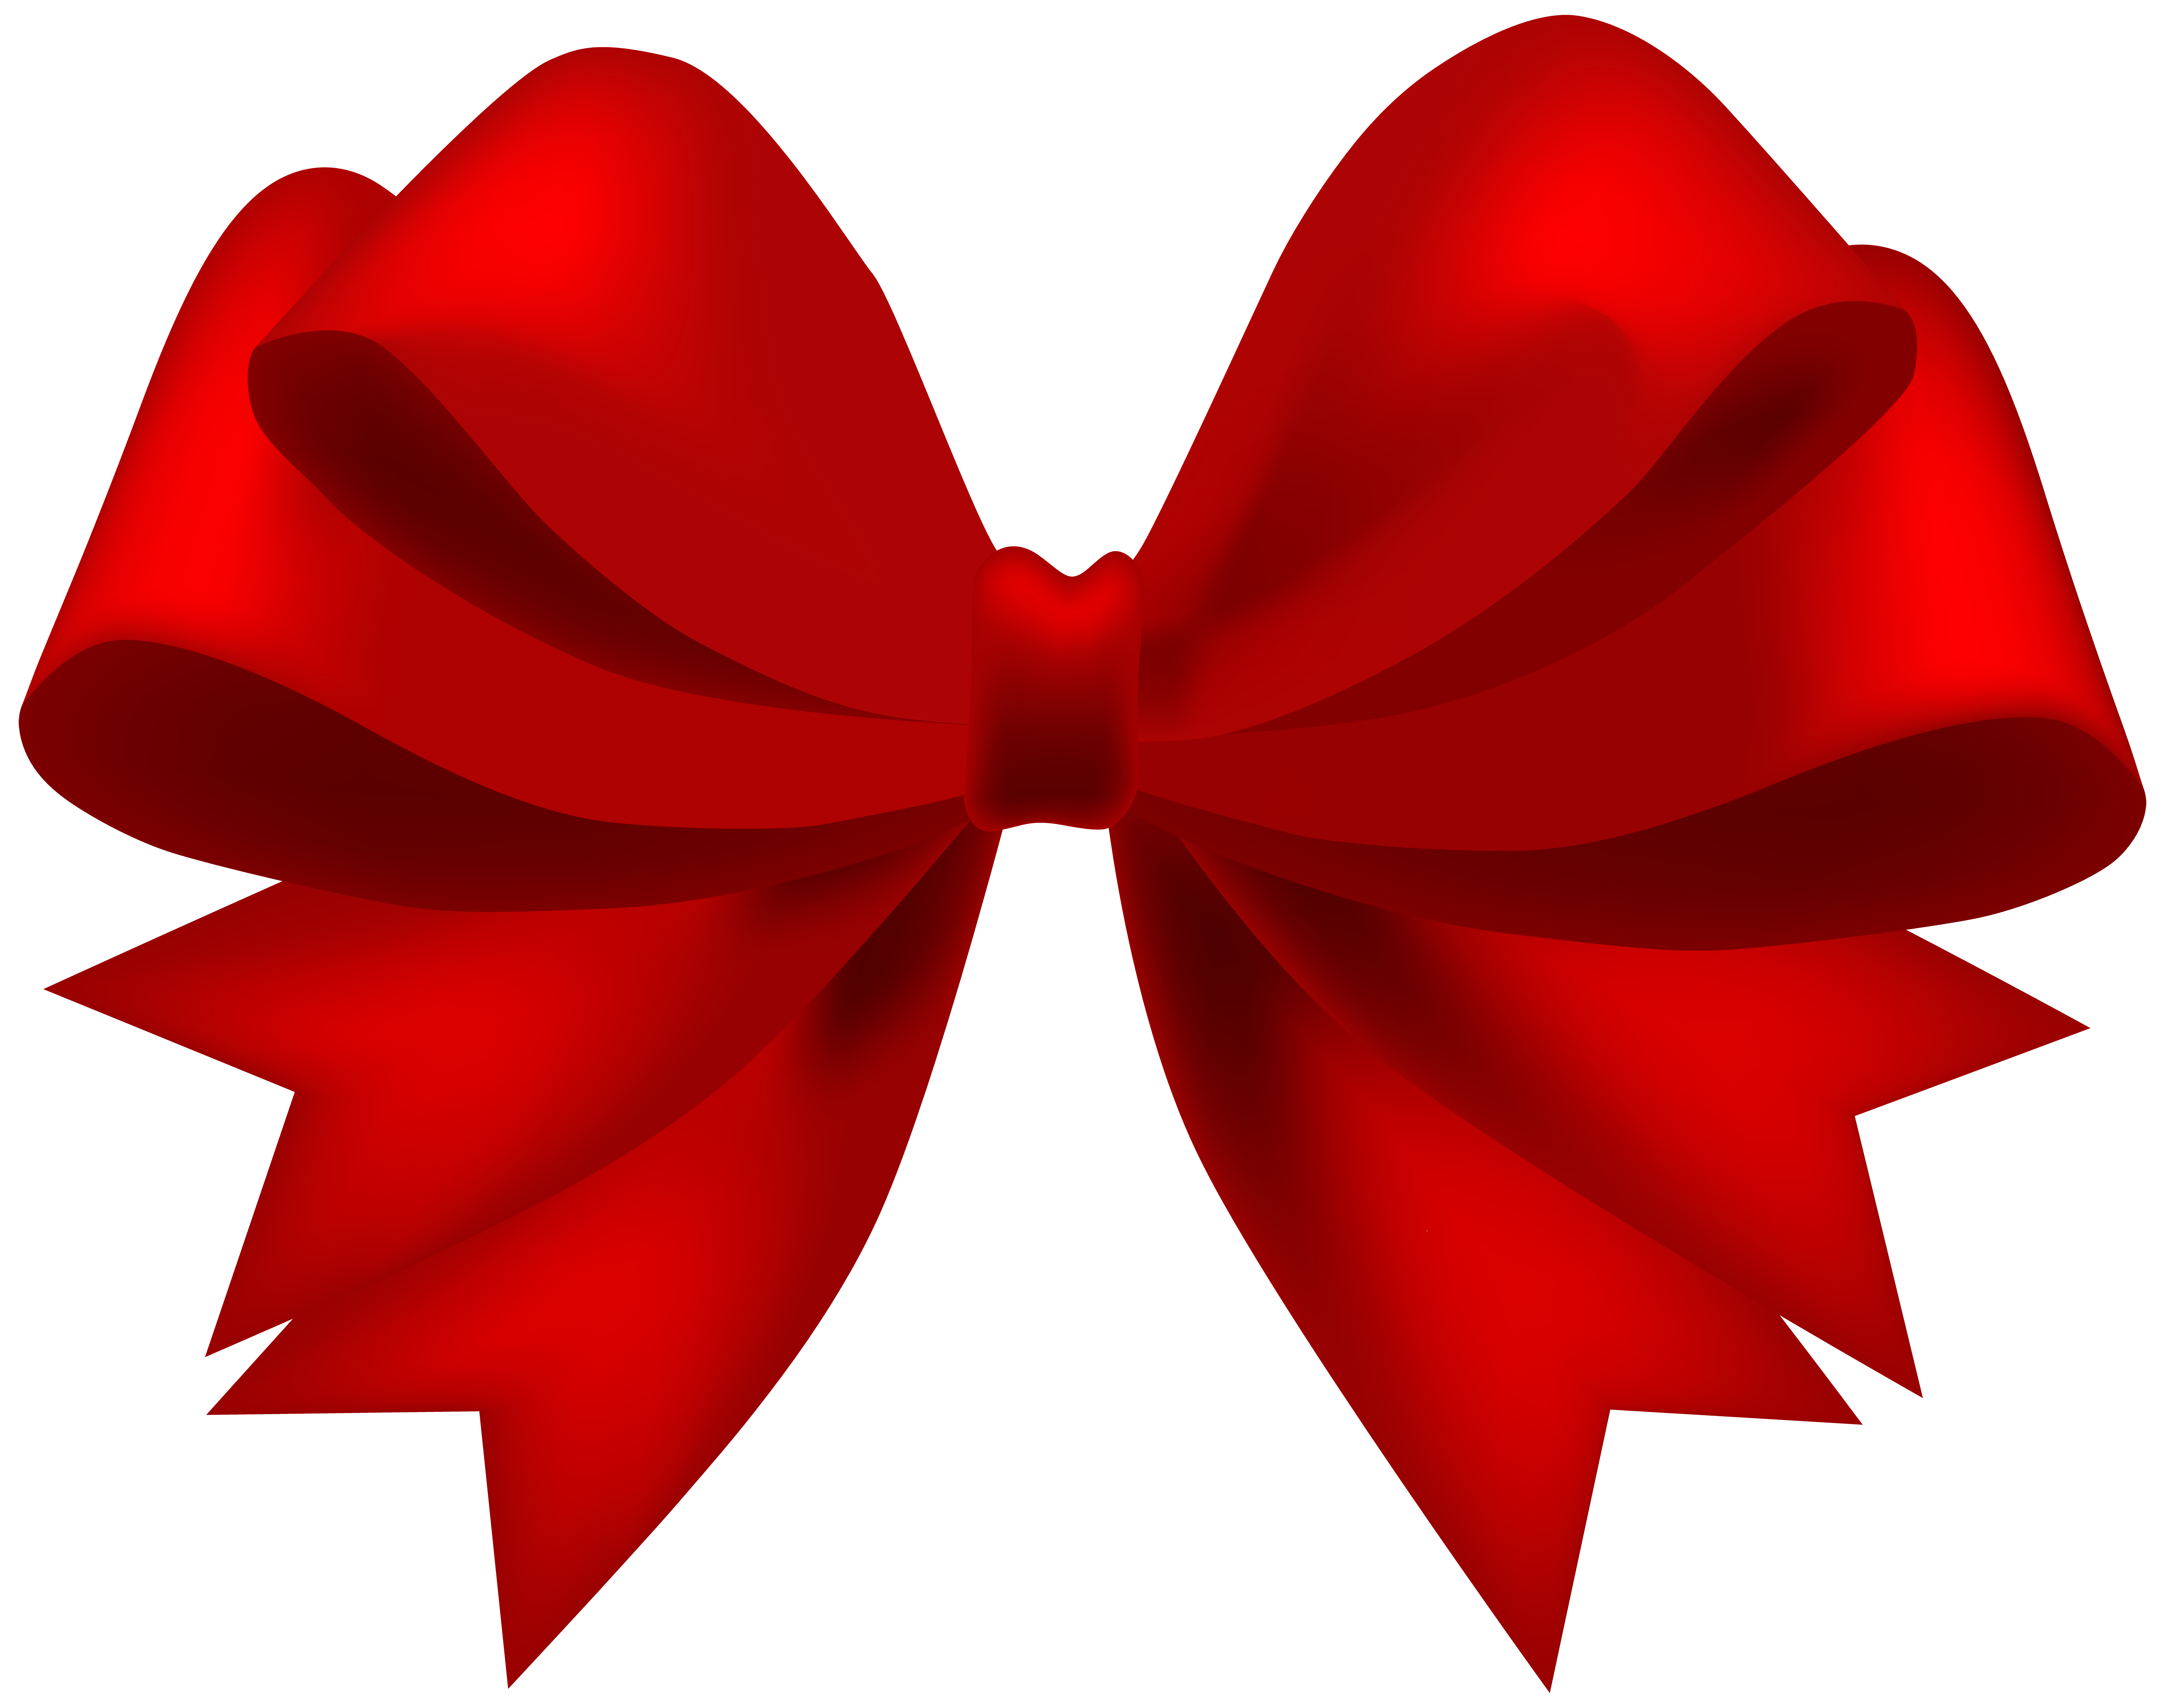 8000x6313 Red Bow Transparent Png Clip Art Imageu200b Gallery Yopriceville